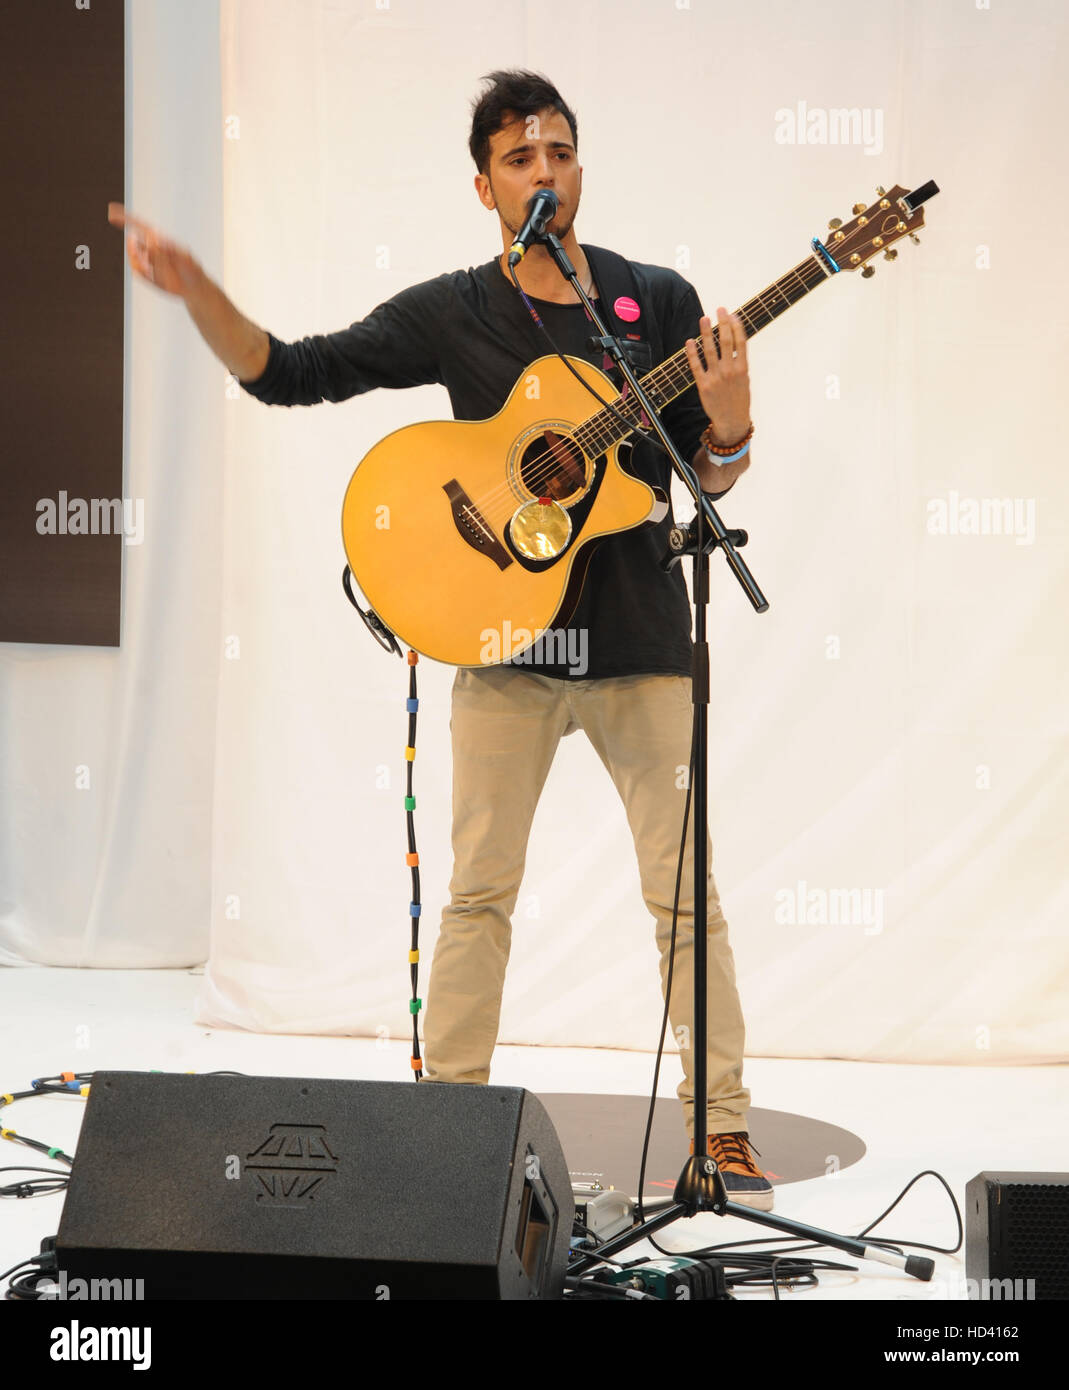 Westfield Stratford Concerts grand final comprend: Lucca Où: London, Royaume-Uni Quand: 04 Oct 2016 Banque D'Images